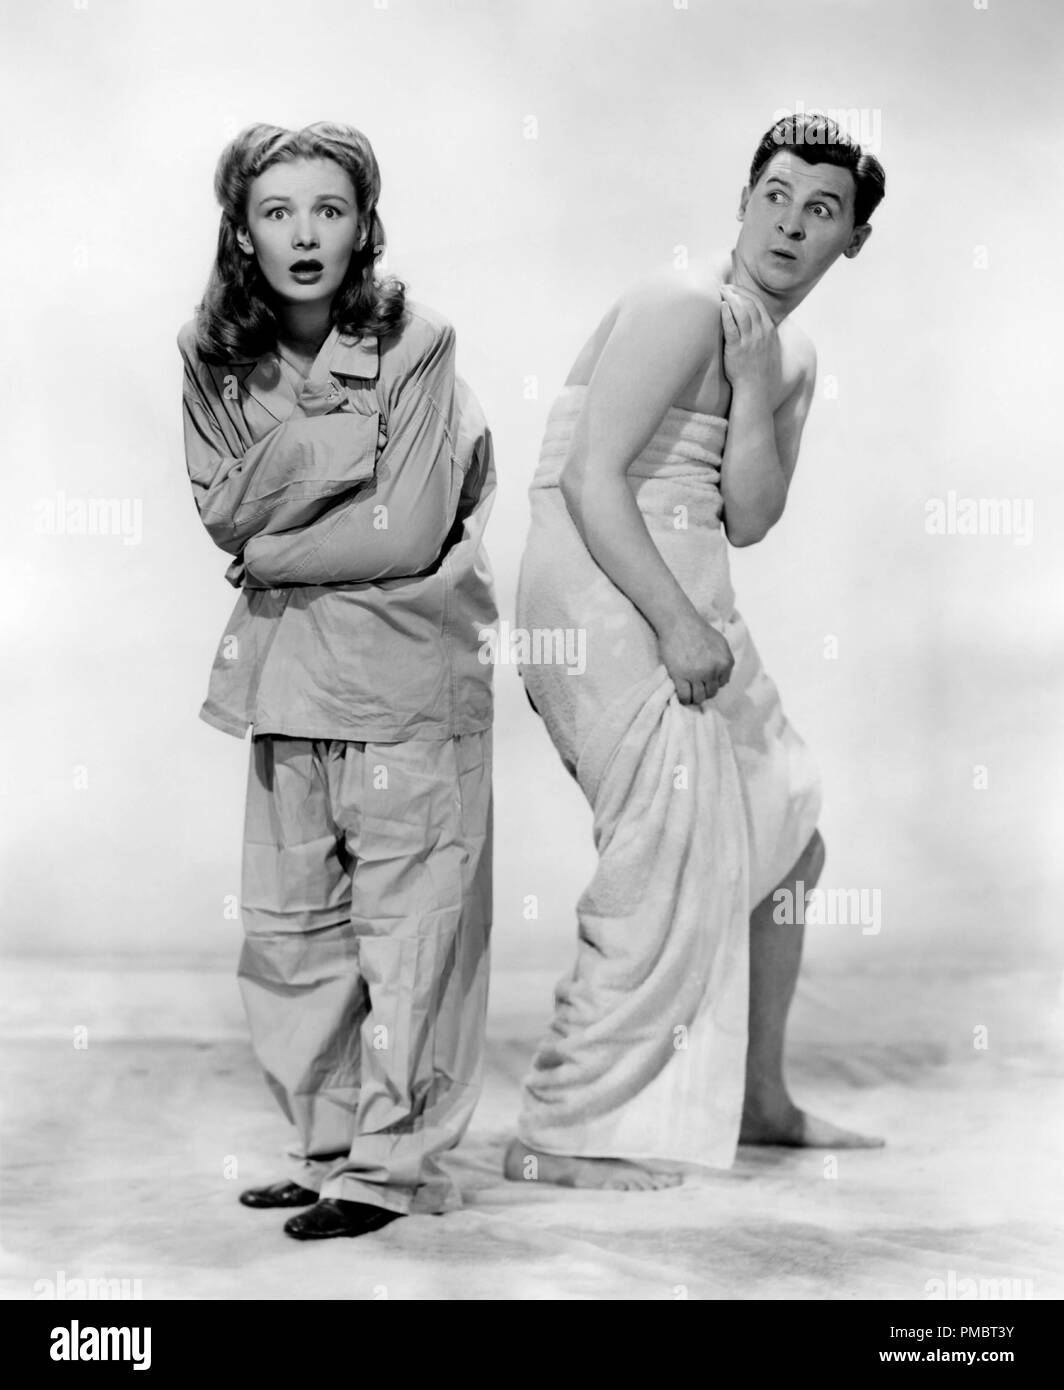 veronica-lake-and-eddie-brackenhold-that